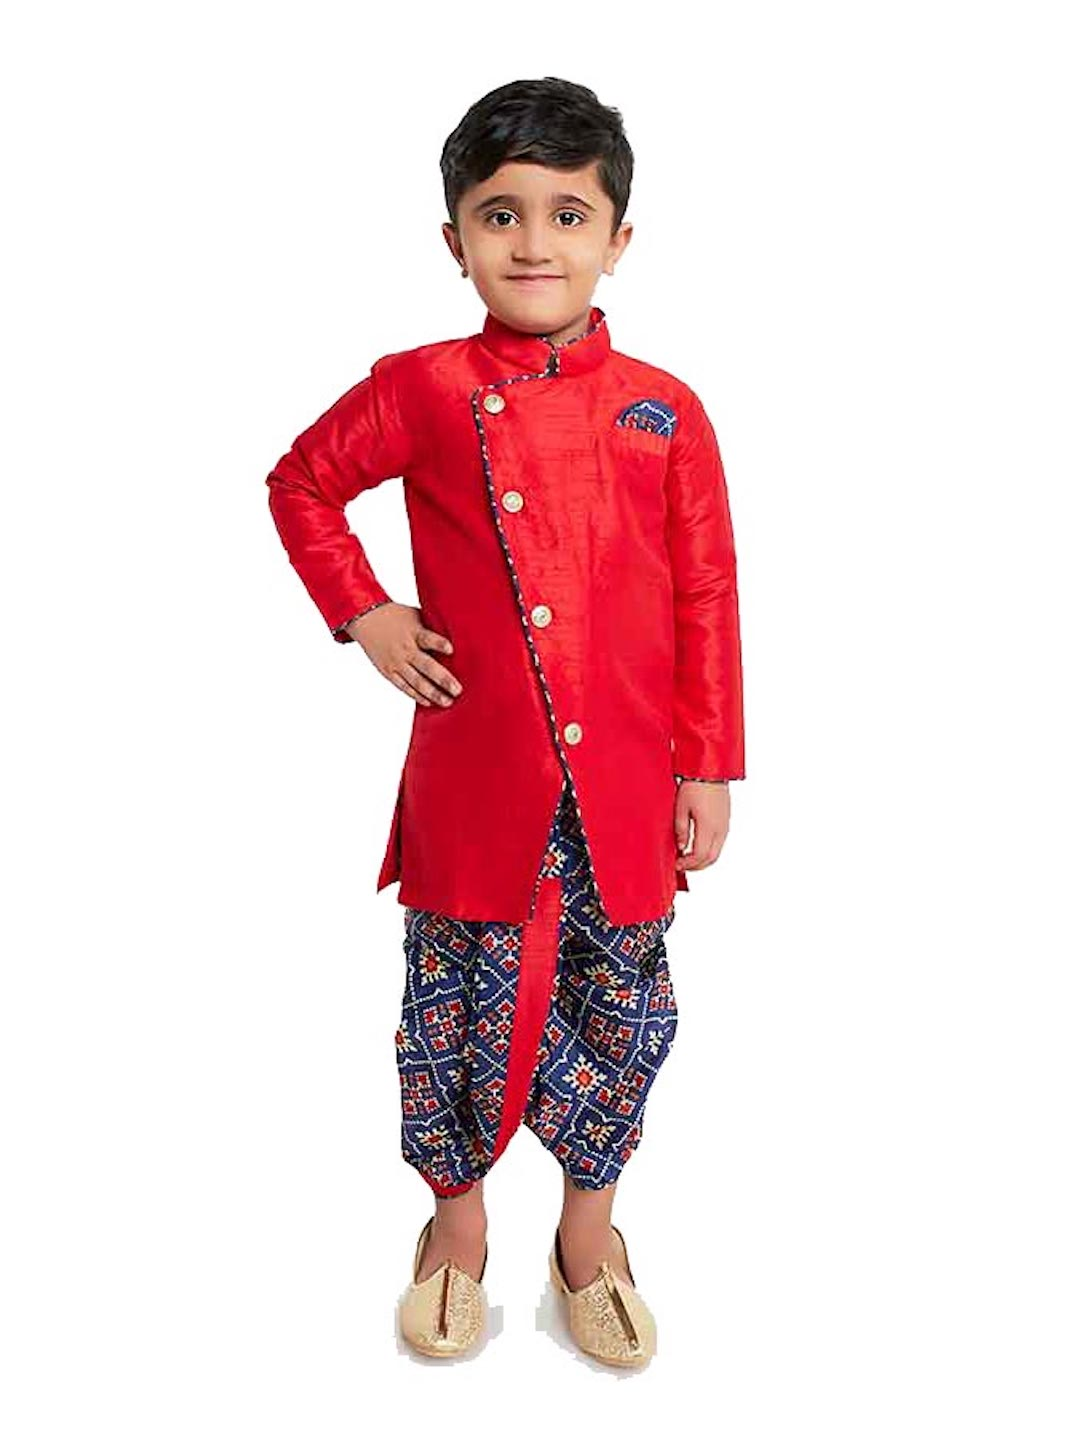 [Available] Red Sherwani with Navy Printed Dhoti Set [1 - 10yrs]